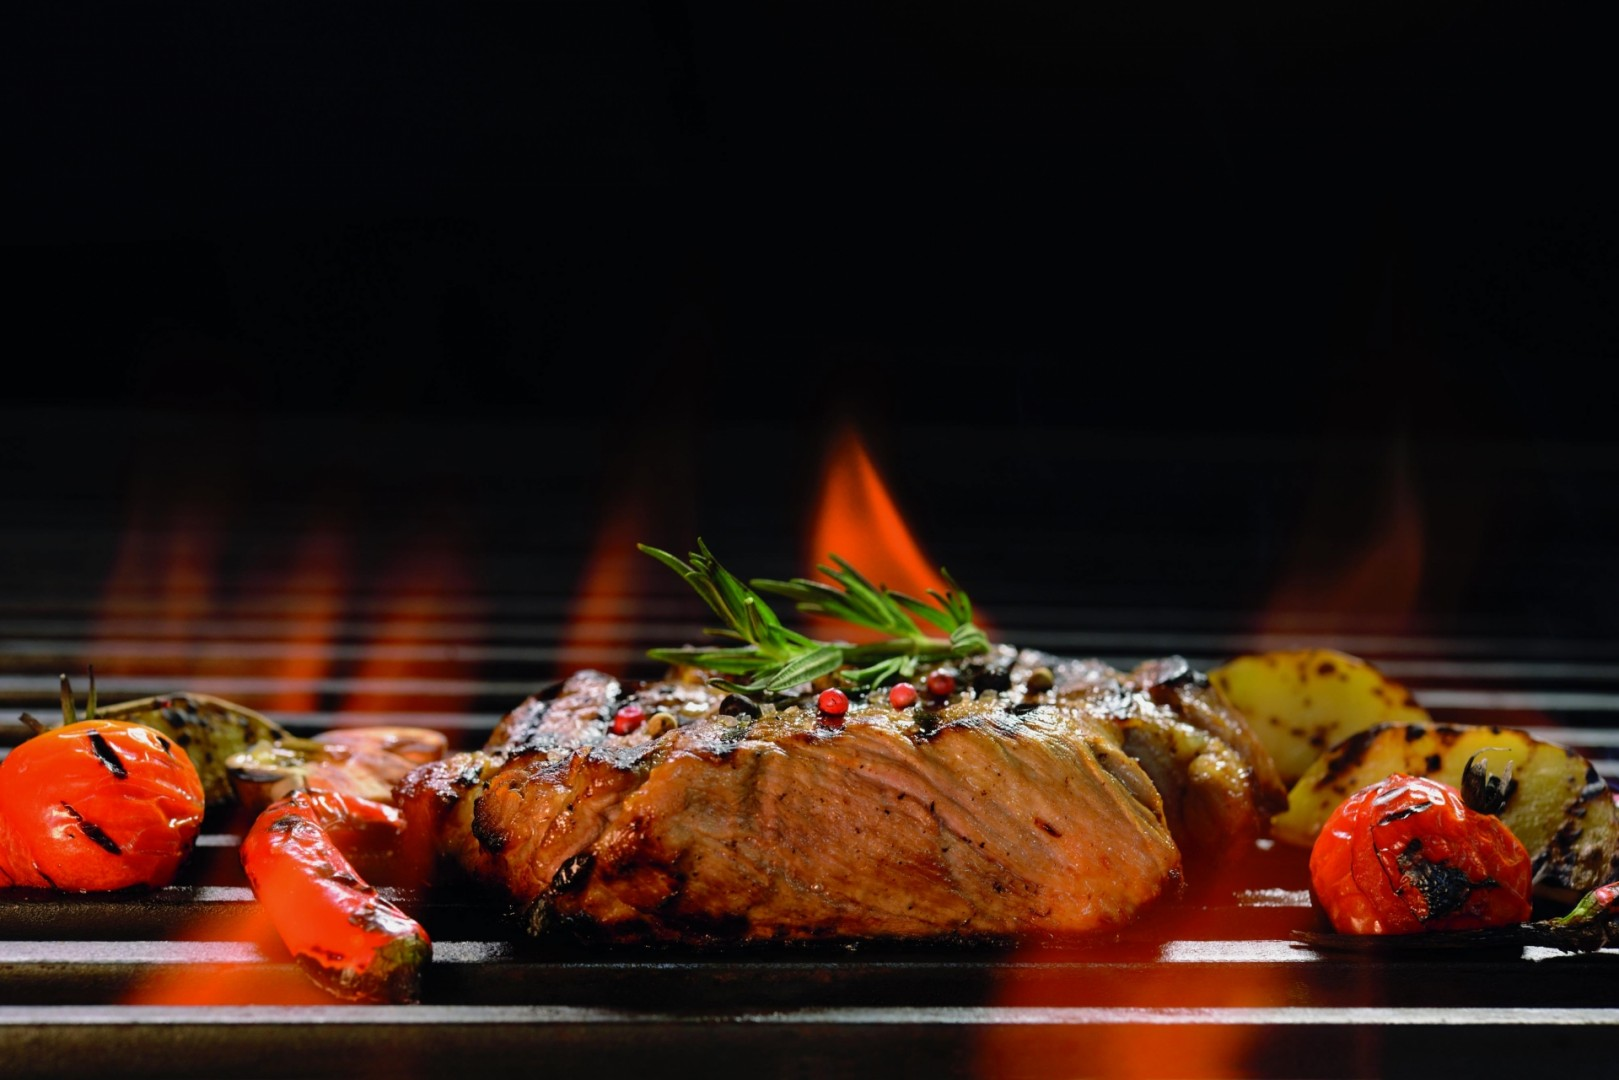 Grill Chill Its Bbq Time 15082019 Visit Moselle